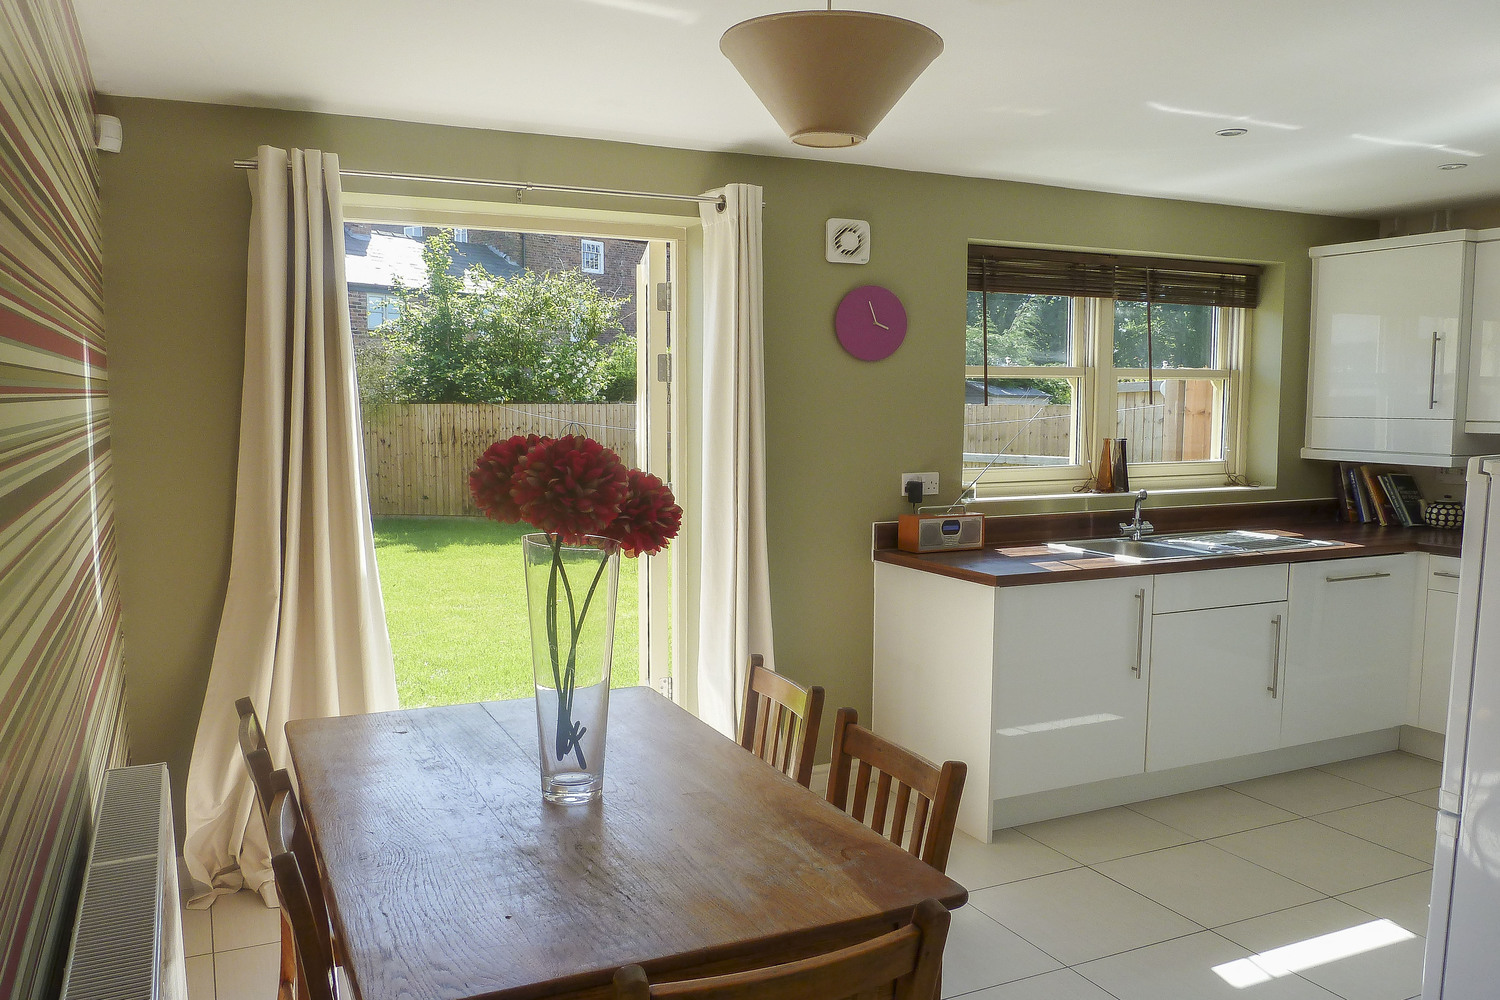 Quality Images for Estate Agents